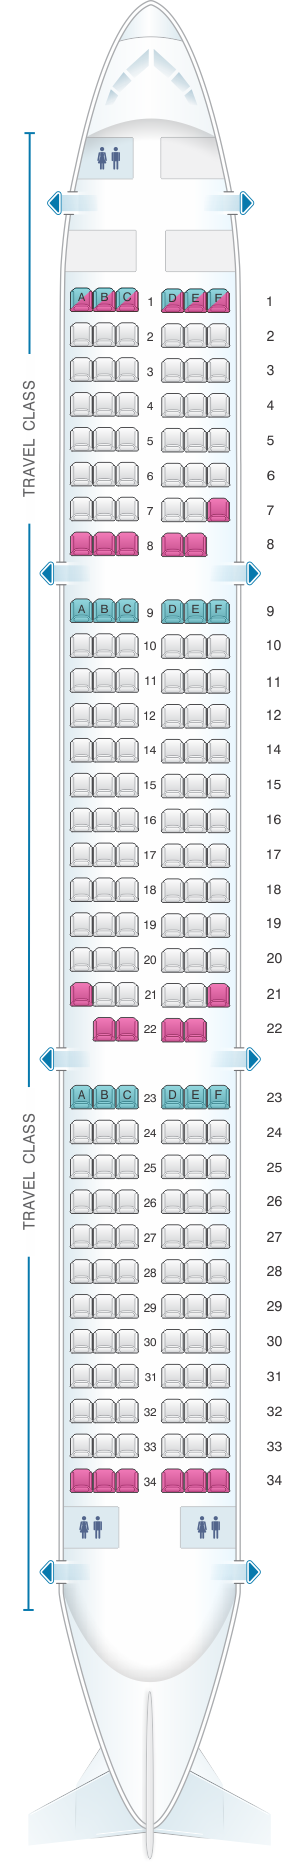 Seat map for Asiana Airlines Airbus A321 200 195PAX